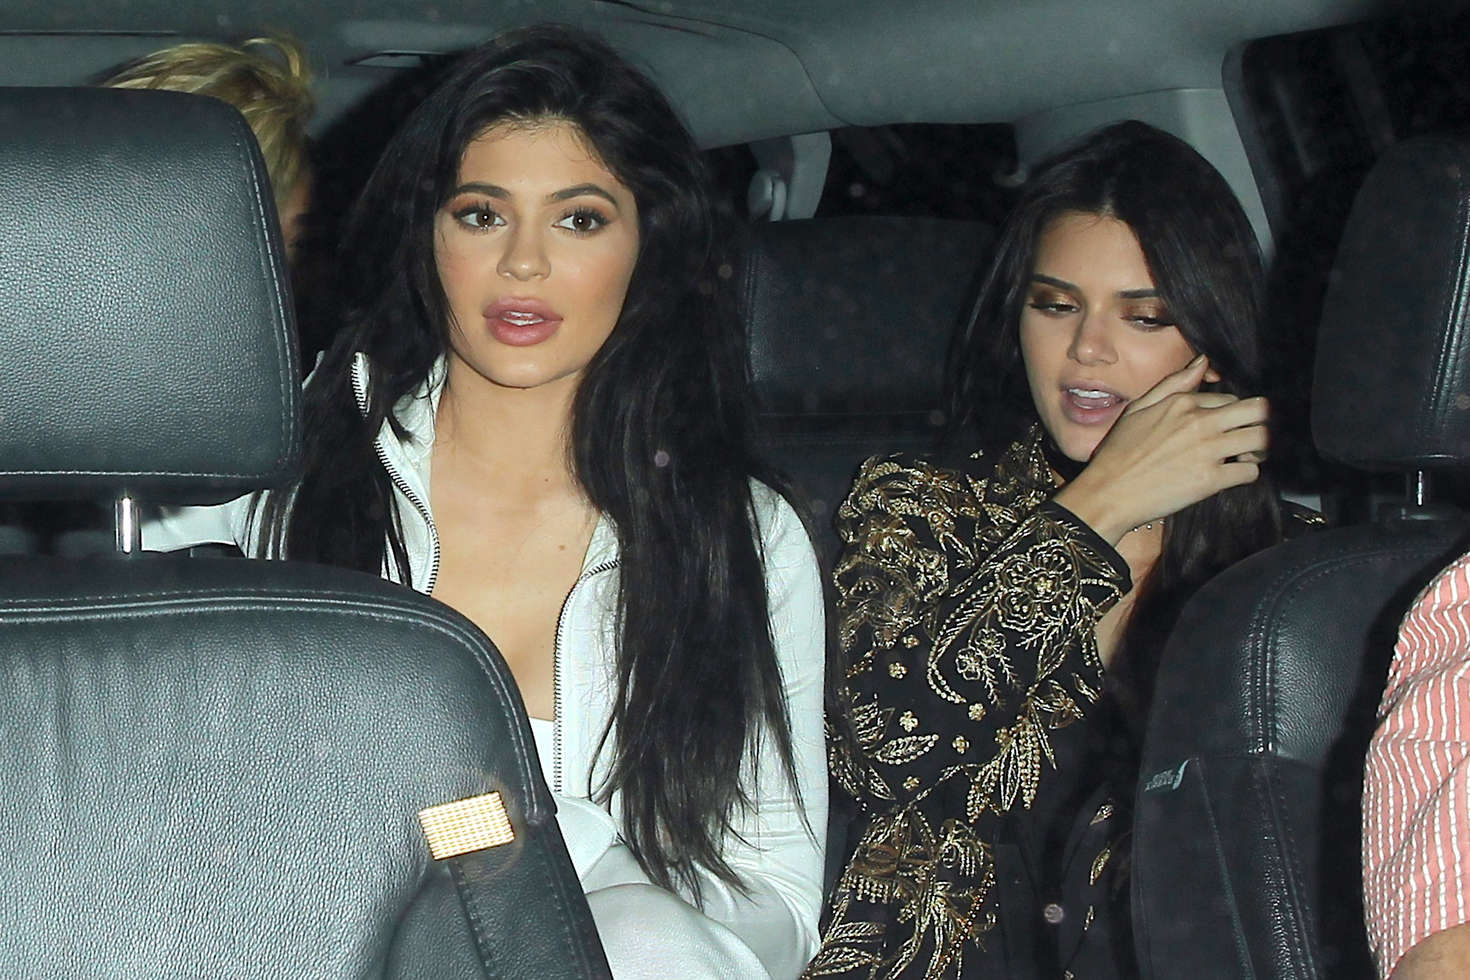 Kylie Jenner 2016 : Kylie Jenner at Gigis 21st Birthday Party -02